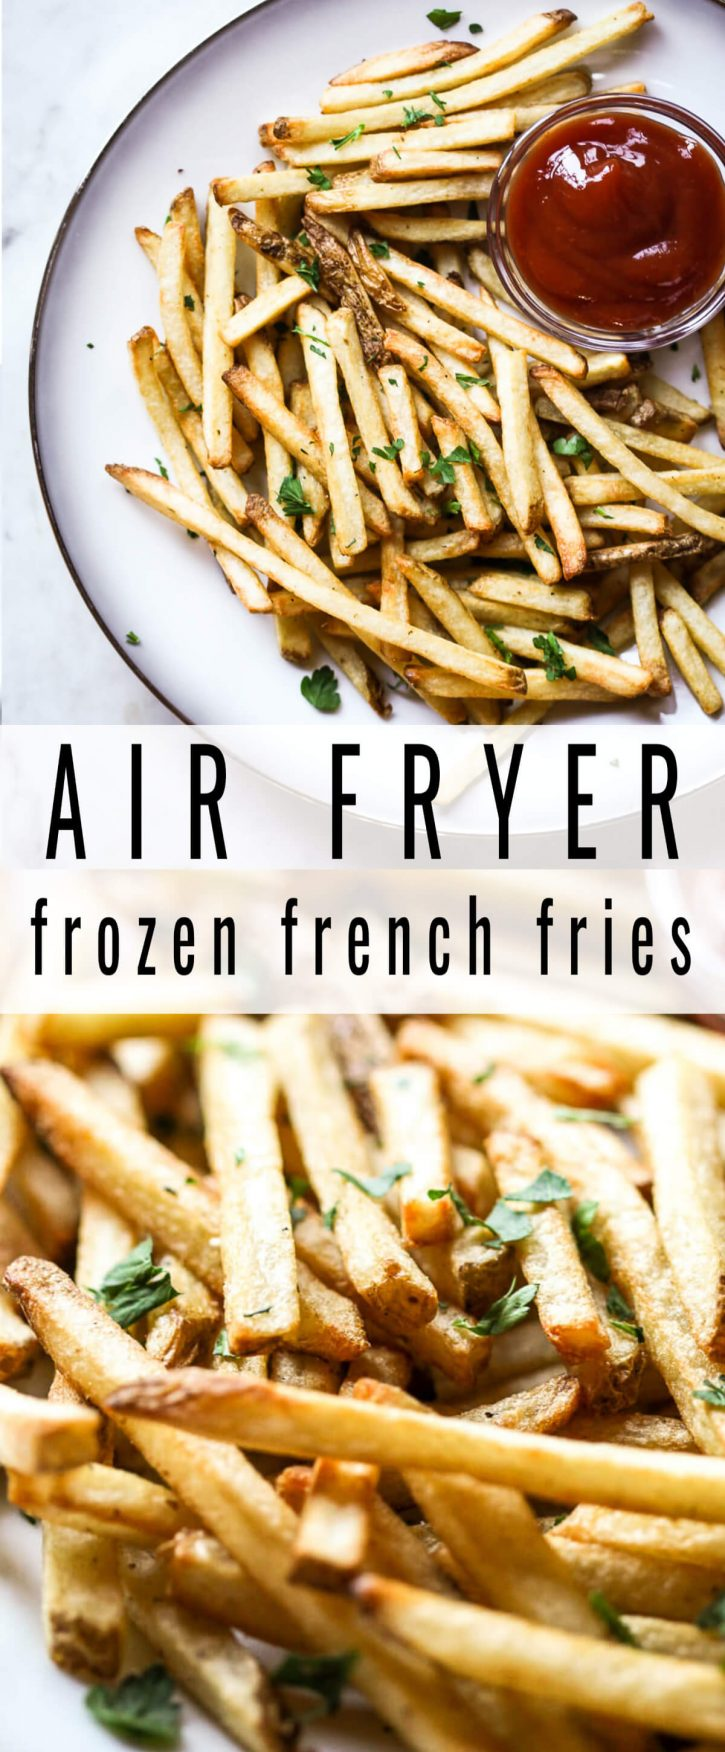 Beautiful photos of crispy golden air fryer frozen french fries on a white plate with ketchup on the side.